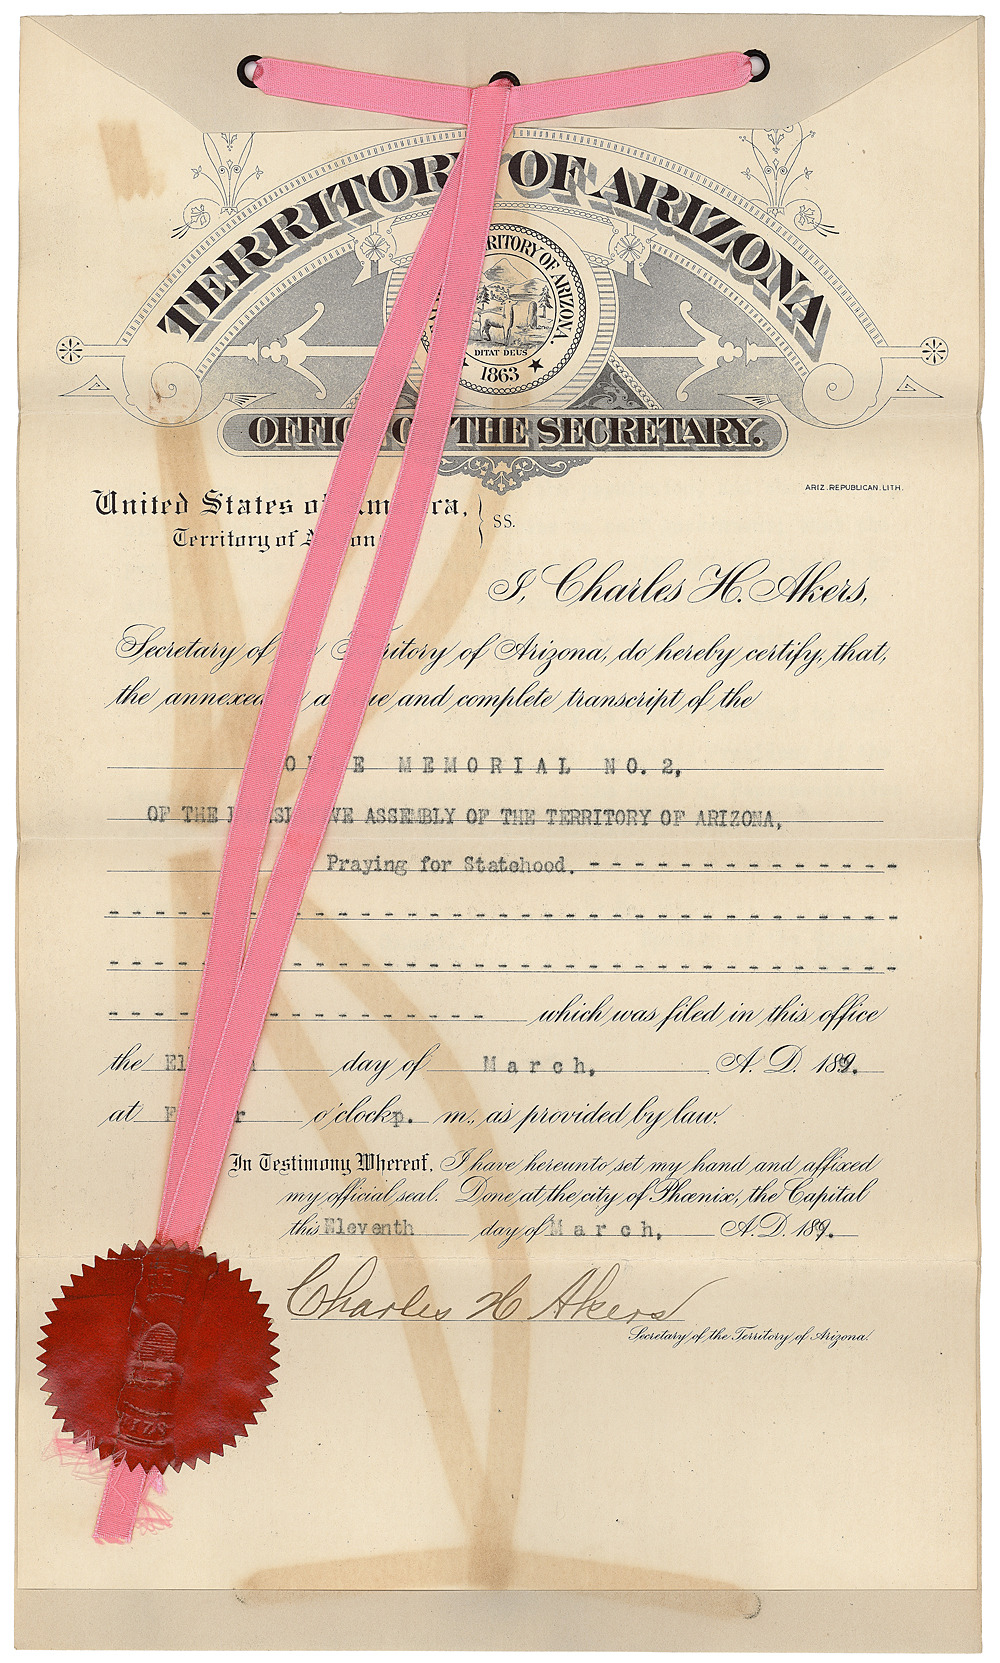 congressarchives:  Today marks the 100th anniversary for Arizona's statehood! Check out our image gallery to see a selection of documents we've compiled from Arizona's path to statehood. Memorial of the Territory of Arizona praying for Statehood, 3/11/1899, Records of the U.S. House of Representatives